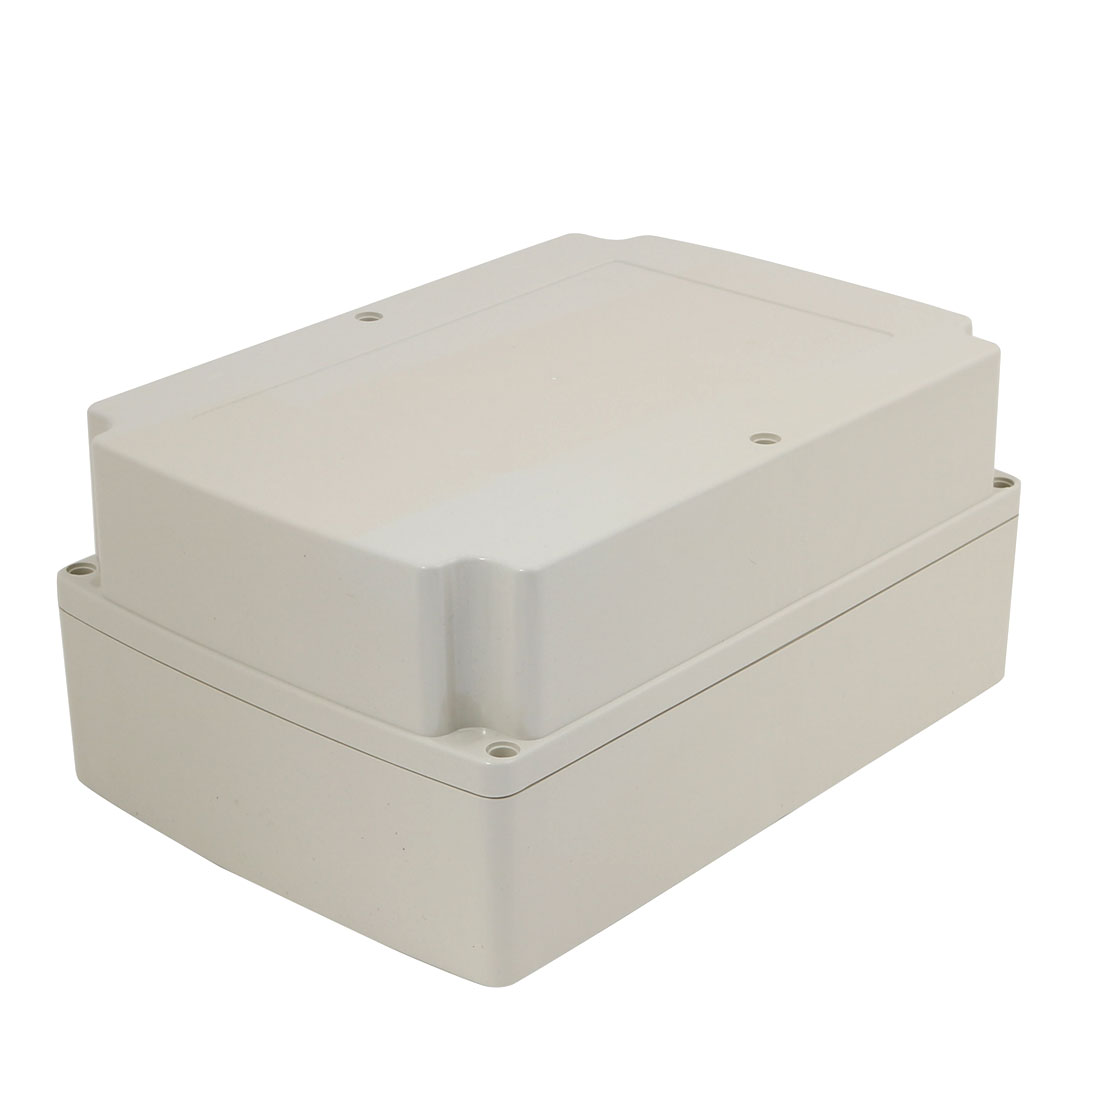 280mmx195mmx135mm Electronic ABS Plastic DIY Junction Box Enclosure Case Gray